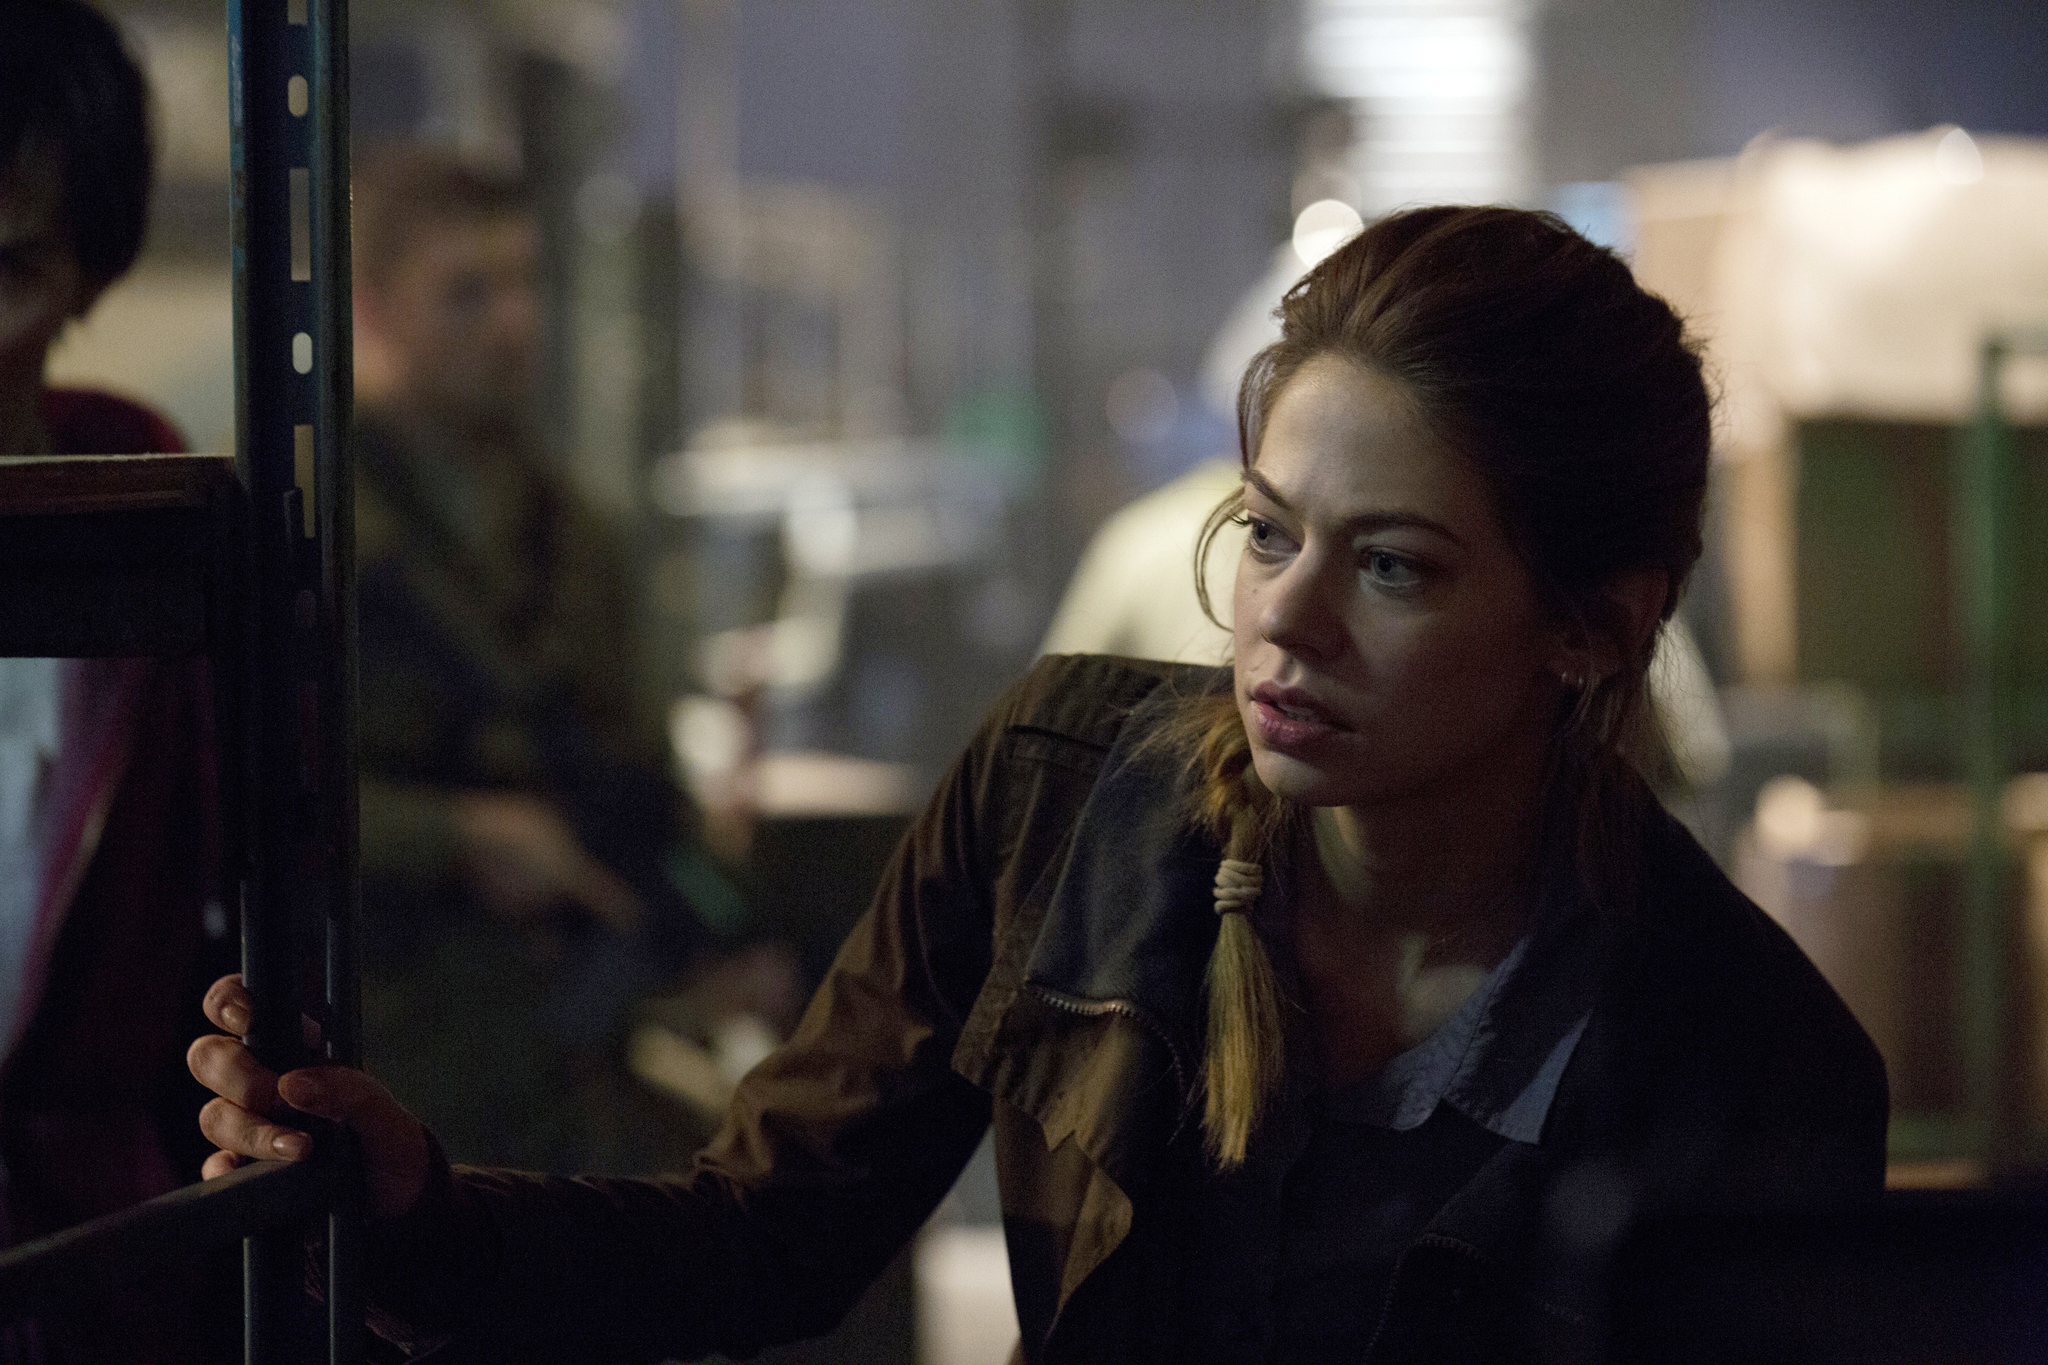 Analeigh Tipton in Warm Bodies (2013)